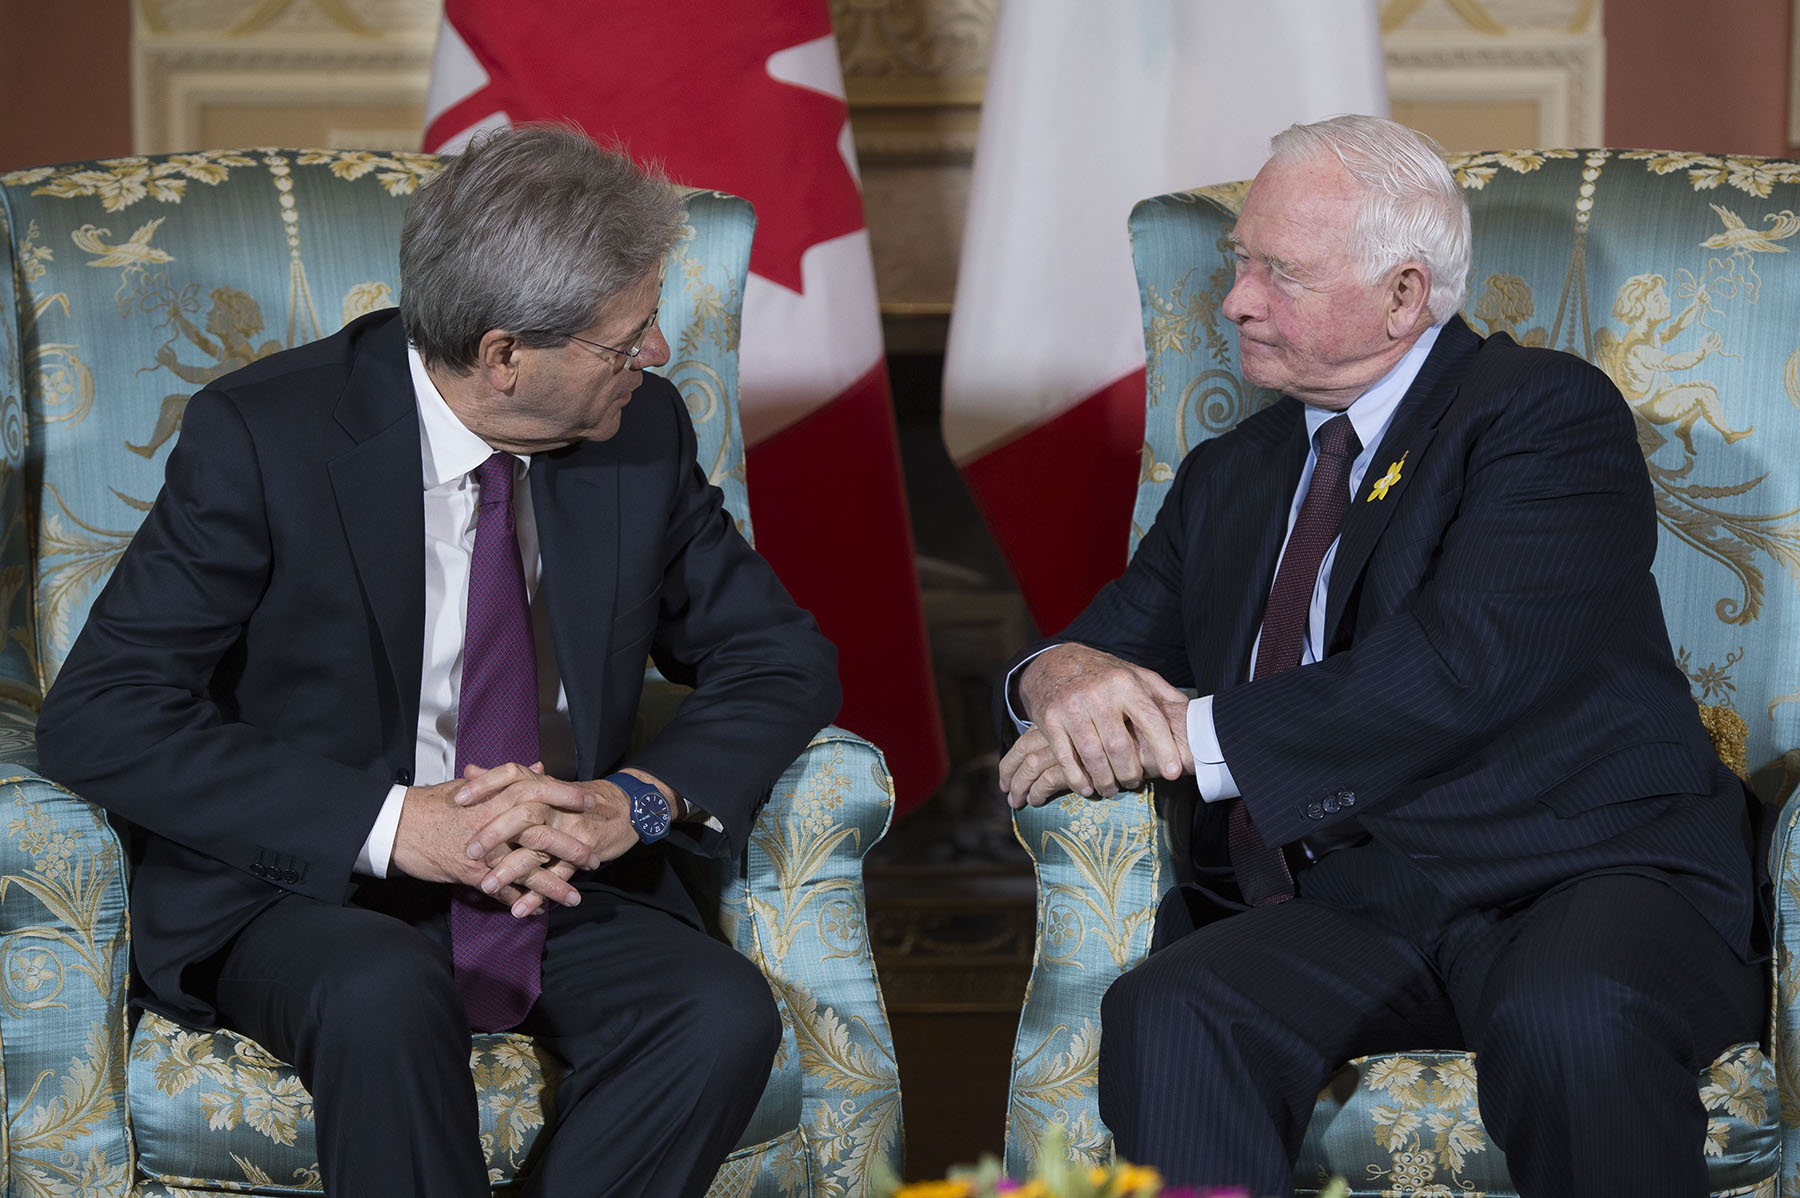 His Excellency the Right Honourable David Johnston, Governor General of Canada, met with His Excellency Paolo Gentiloni, Prime Minister of the Italian Republic, at Rideau Hall.